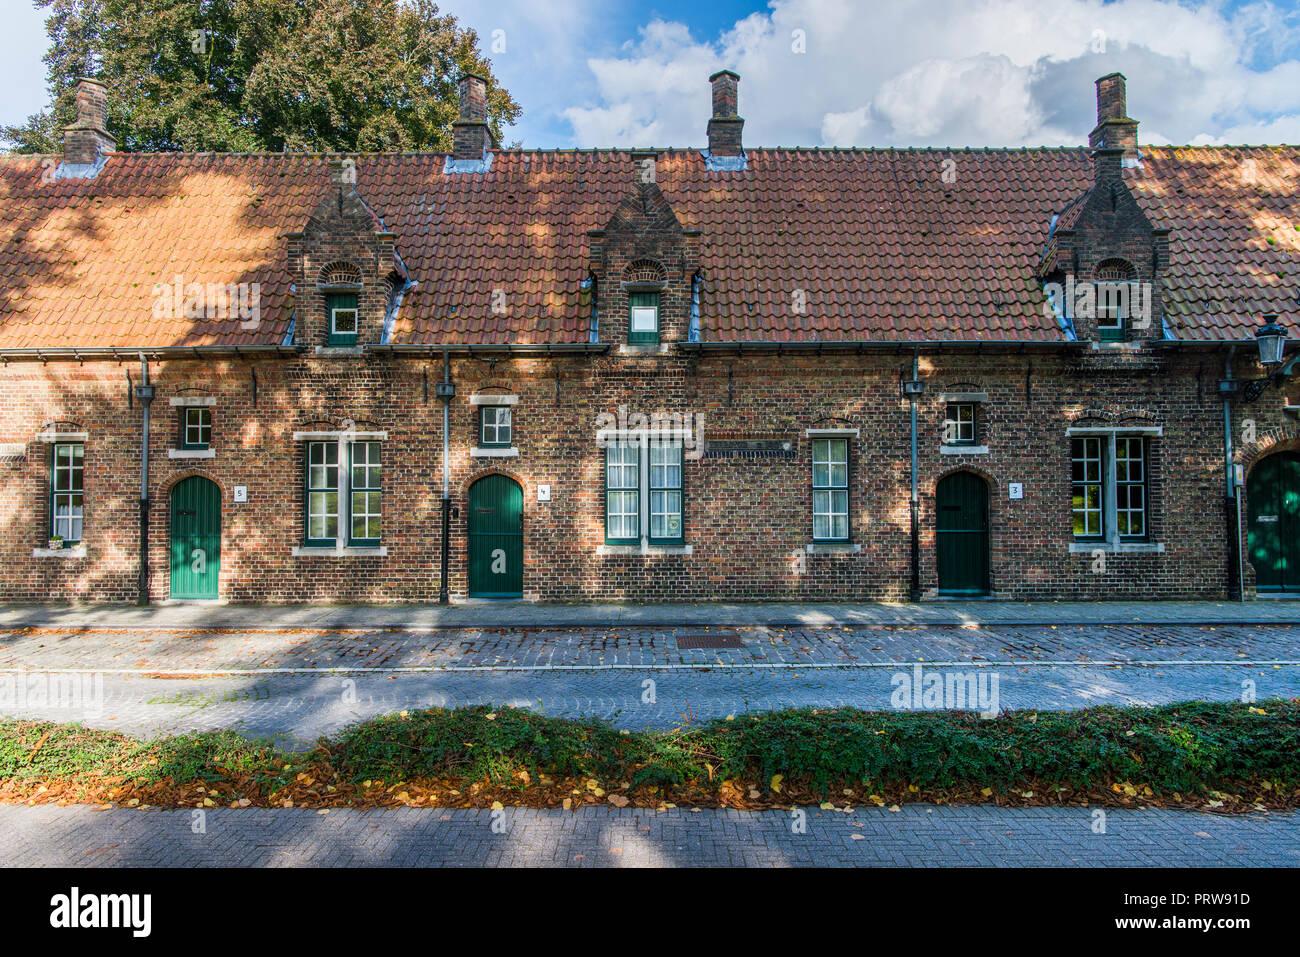 Houses of Brugge - Stock Image